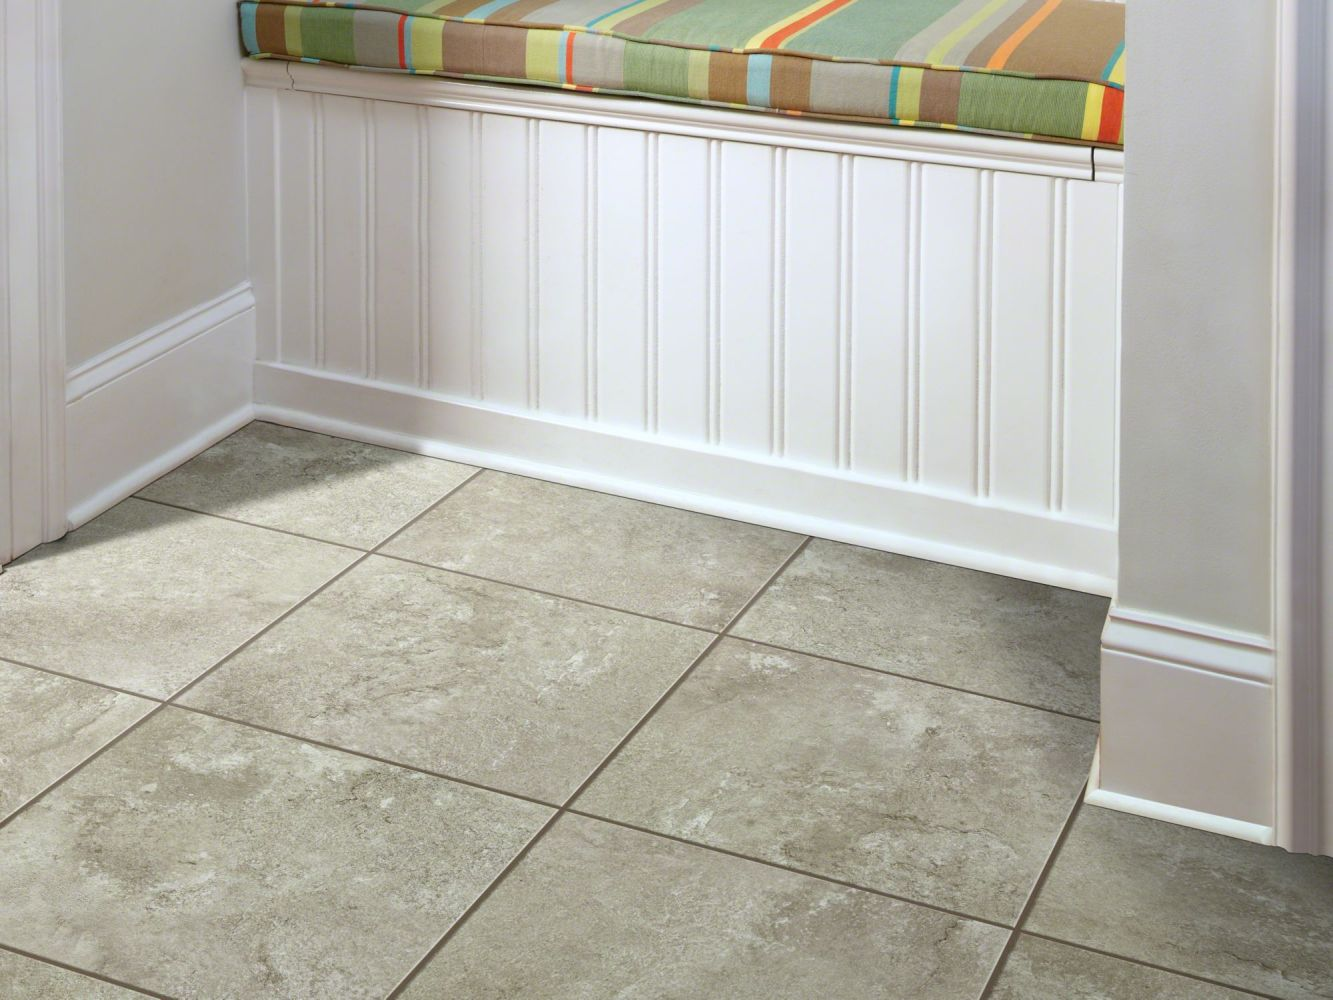 Shaw Floors Resilient Residential Resort Tile Beachscape 00121_0189V